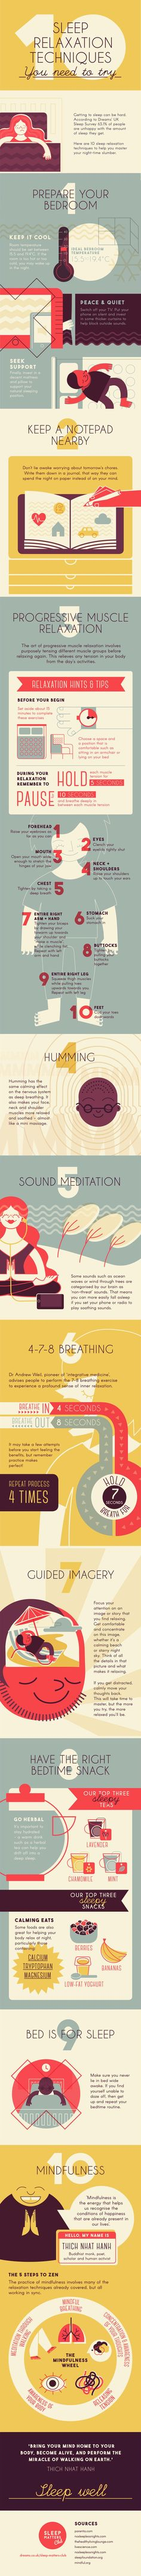 Because 'Just relax!' isn't as helpful as a bunch of actual tips for how to do that. And btw, here are some more infographics that might help you make de-stressing a practice.